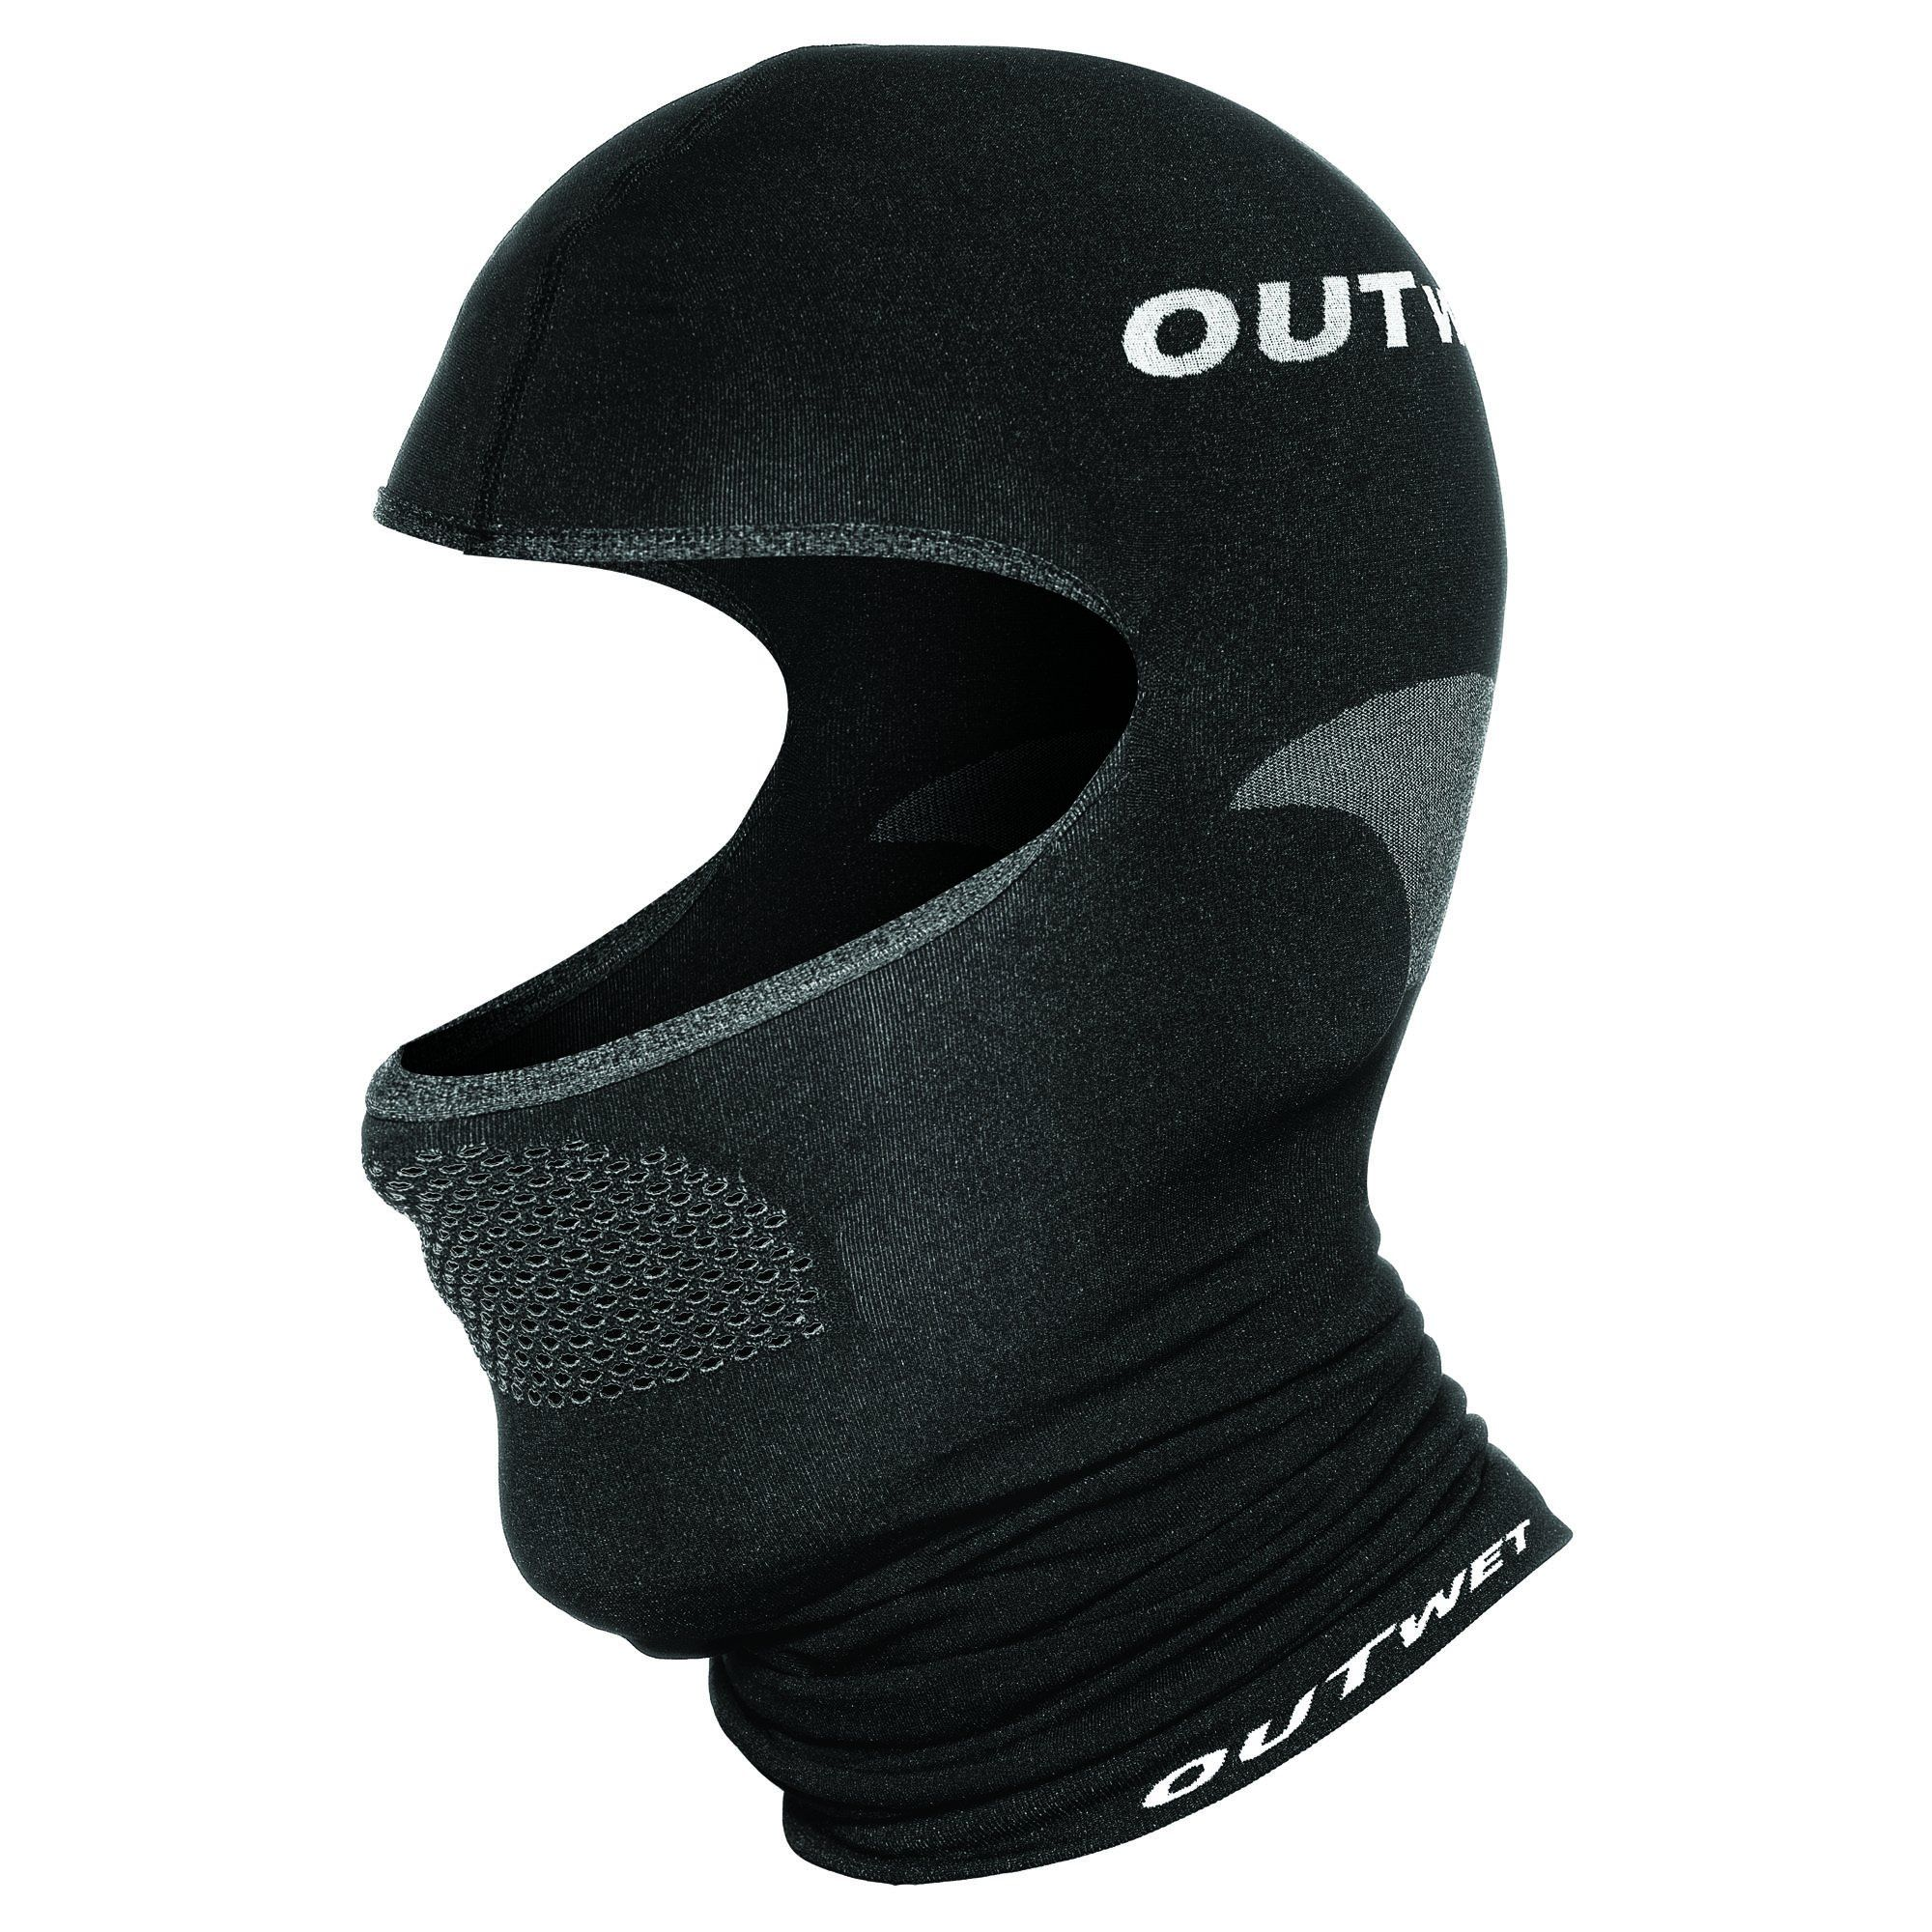 UH1 Balaclava Cycling Cap in Black Made in Italy by Outwet